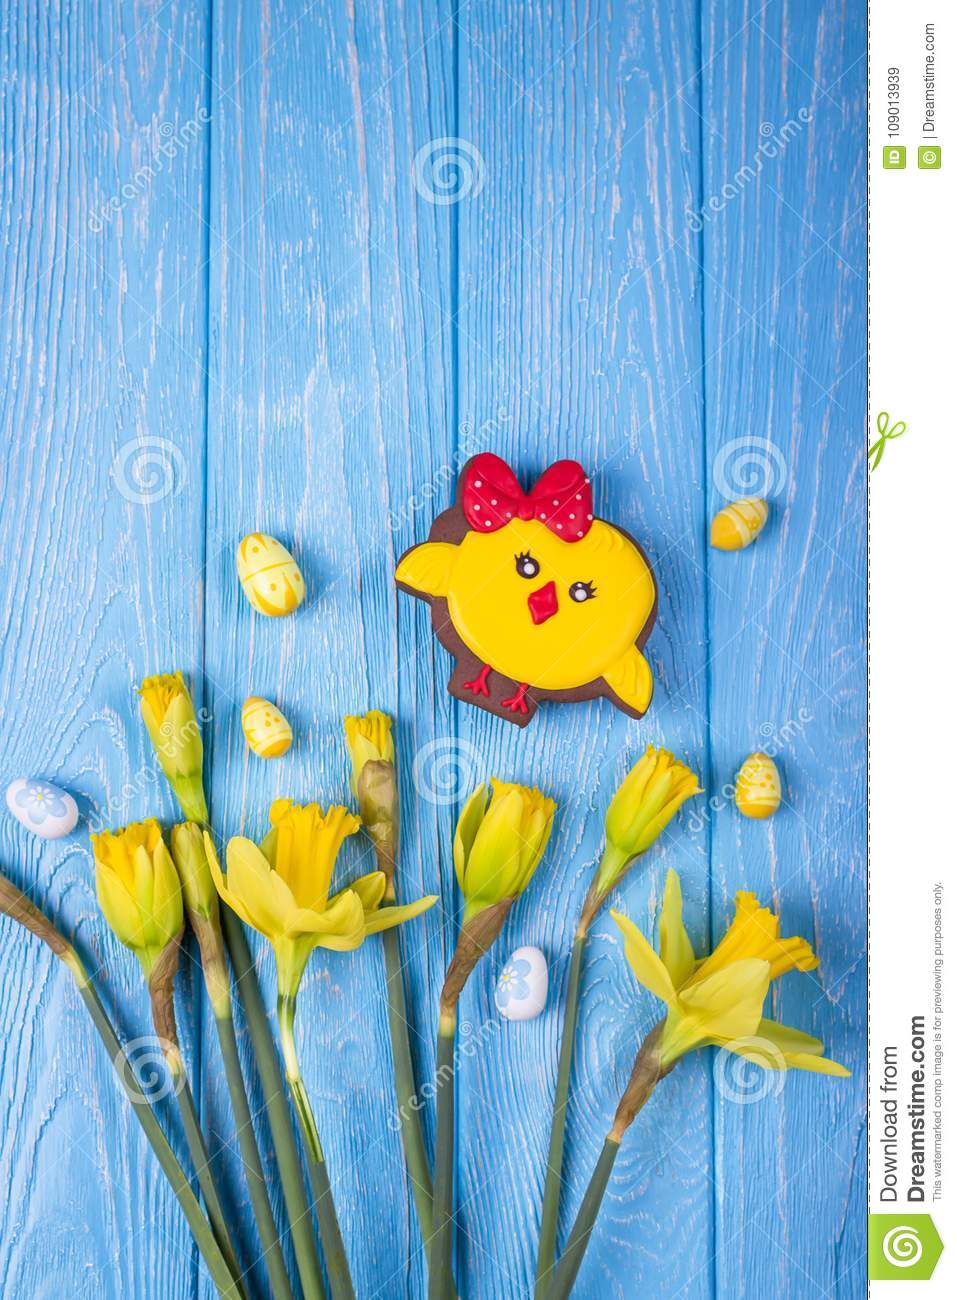 Happy Easter. Spring flowers yellow daffodils, easter eggs and gingerbread chicken on a blue background. Top view, free space